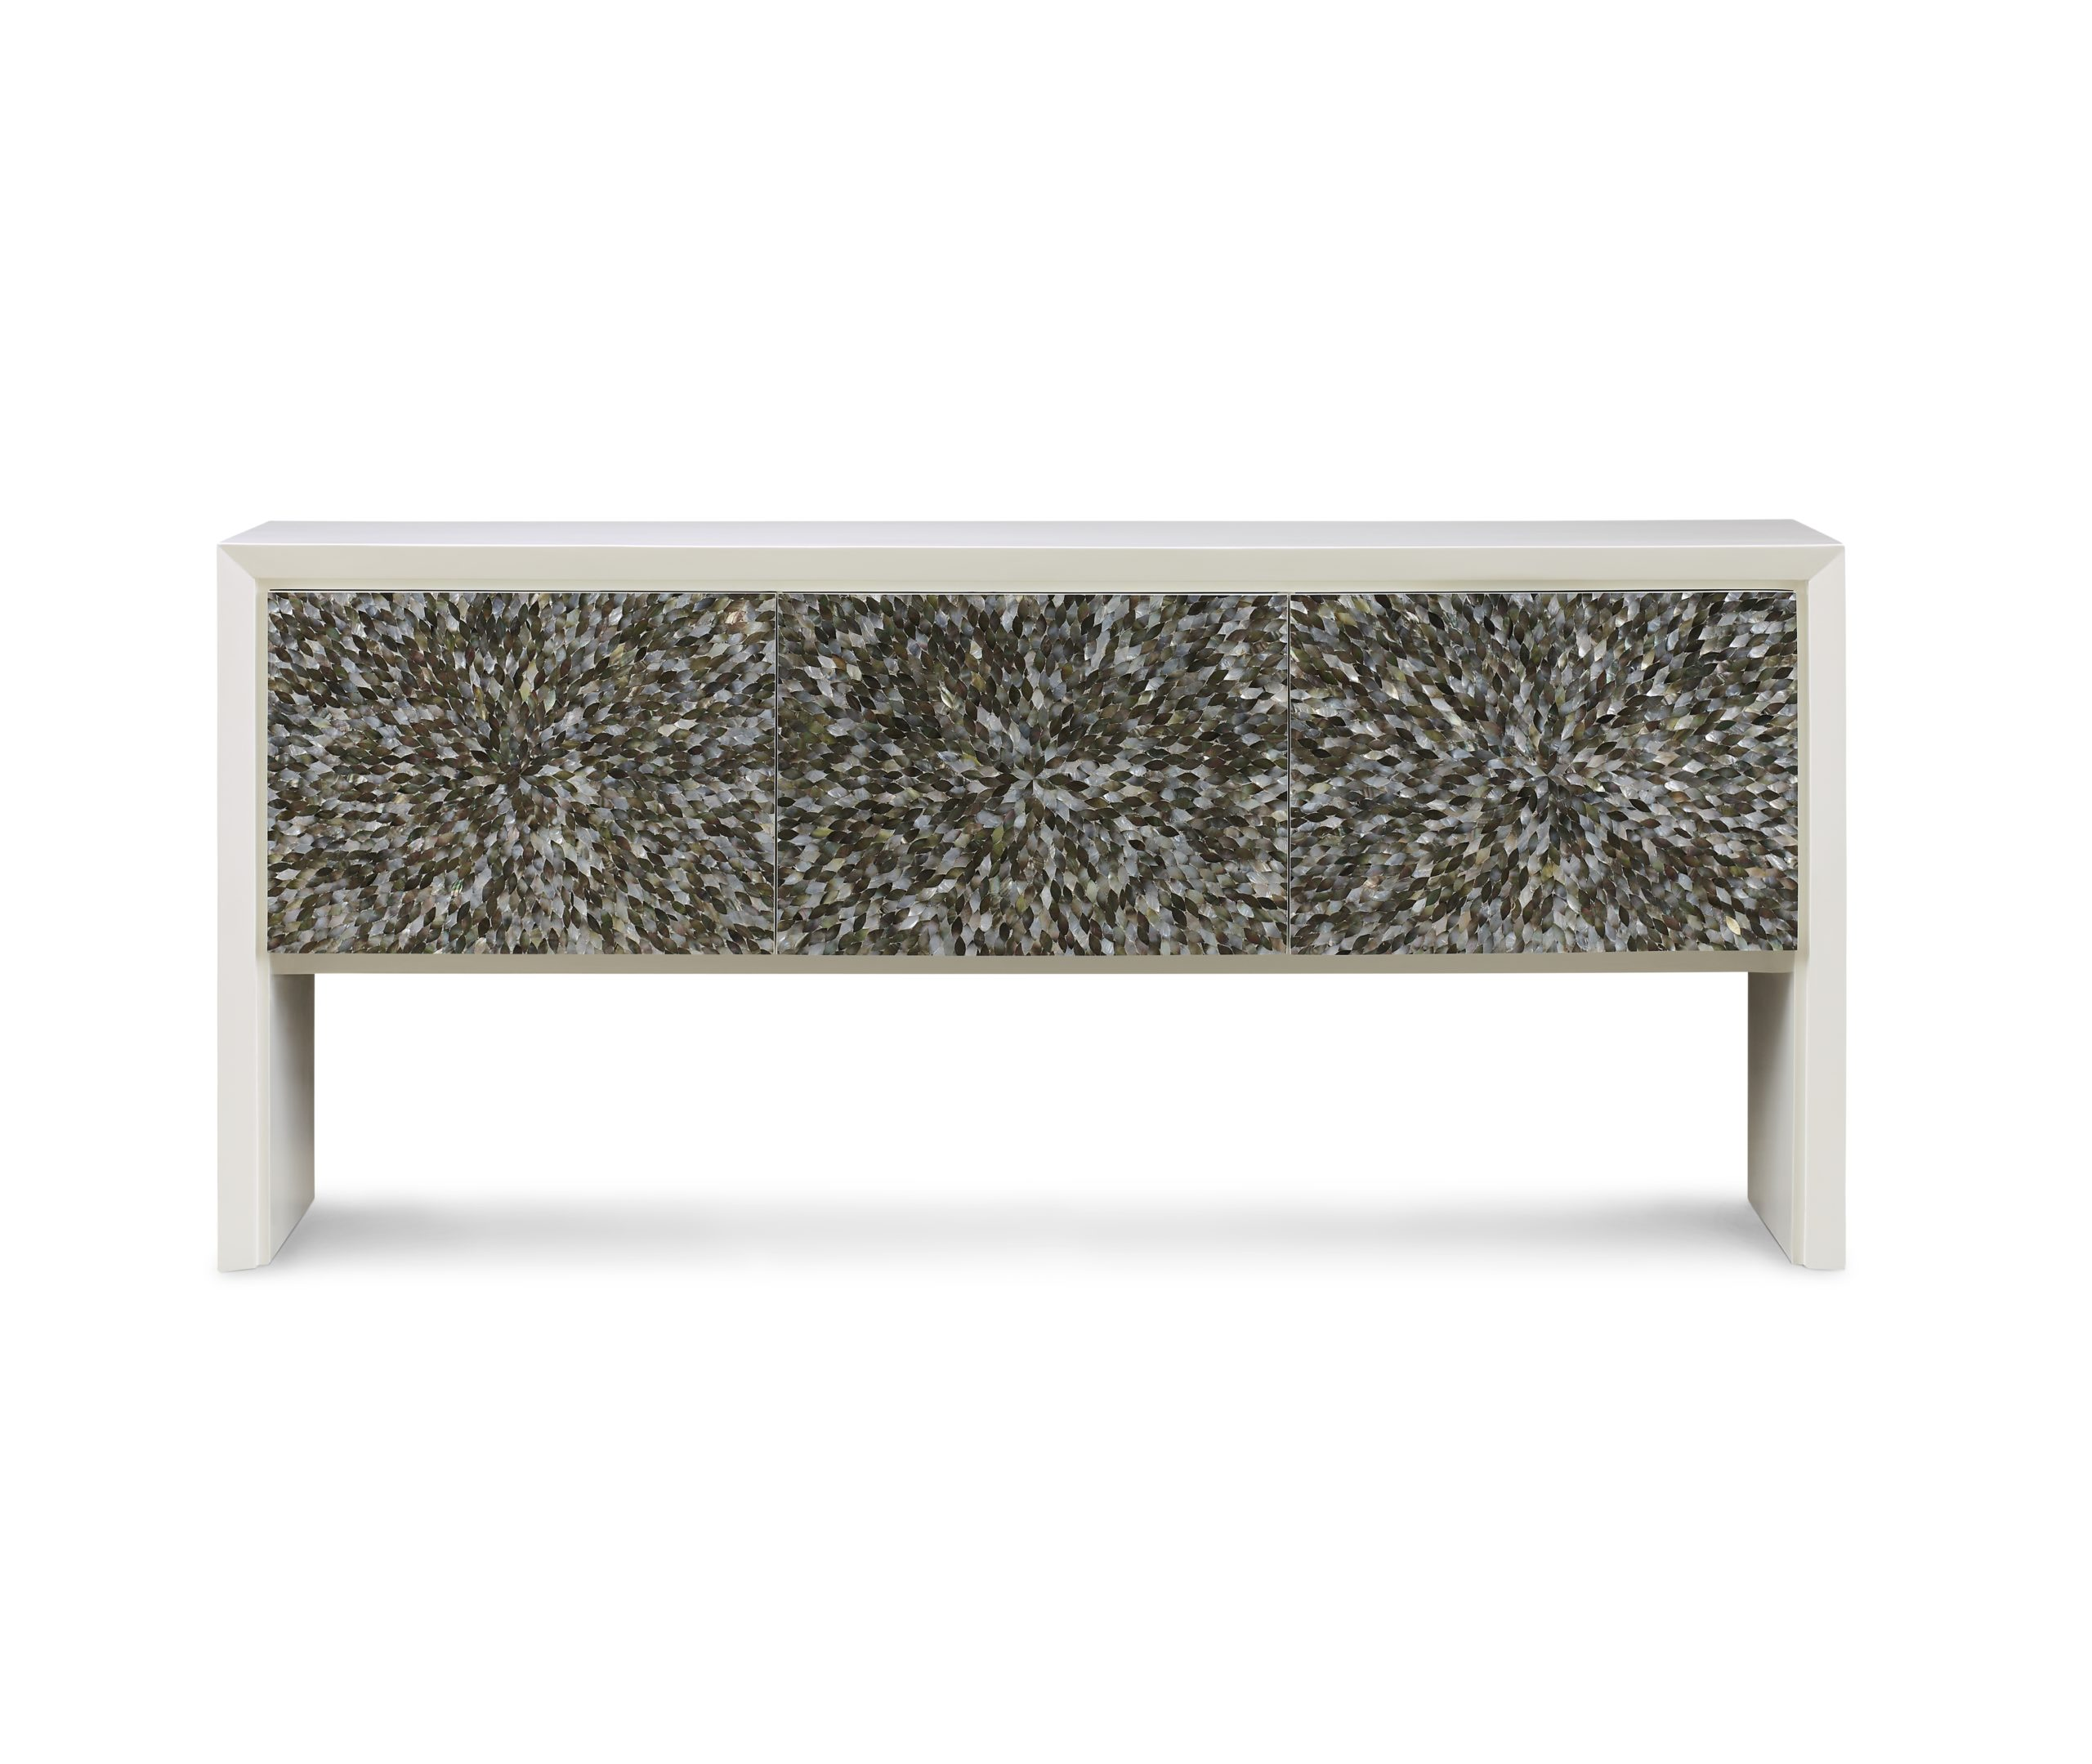 Baker_products_WNWN_nacre_sideboard_BAA3230_FRONT-scaled-1